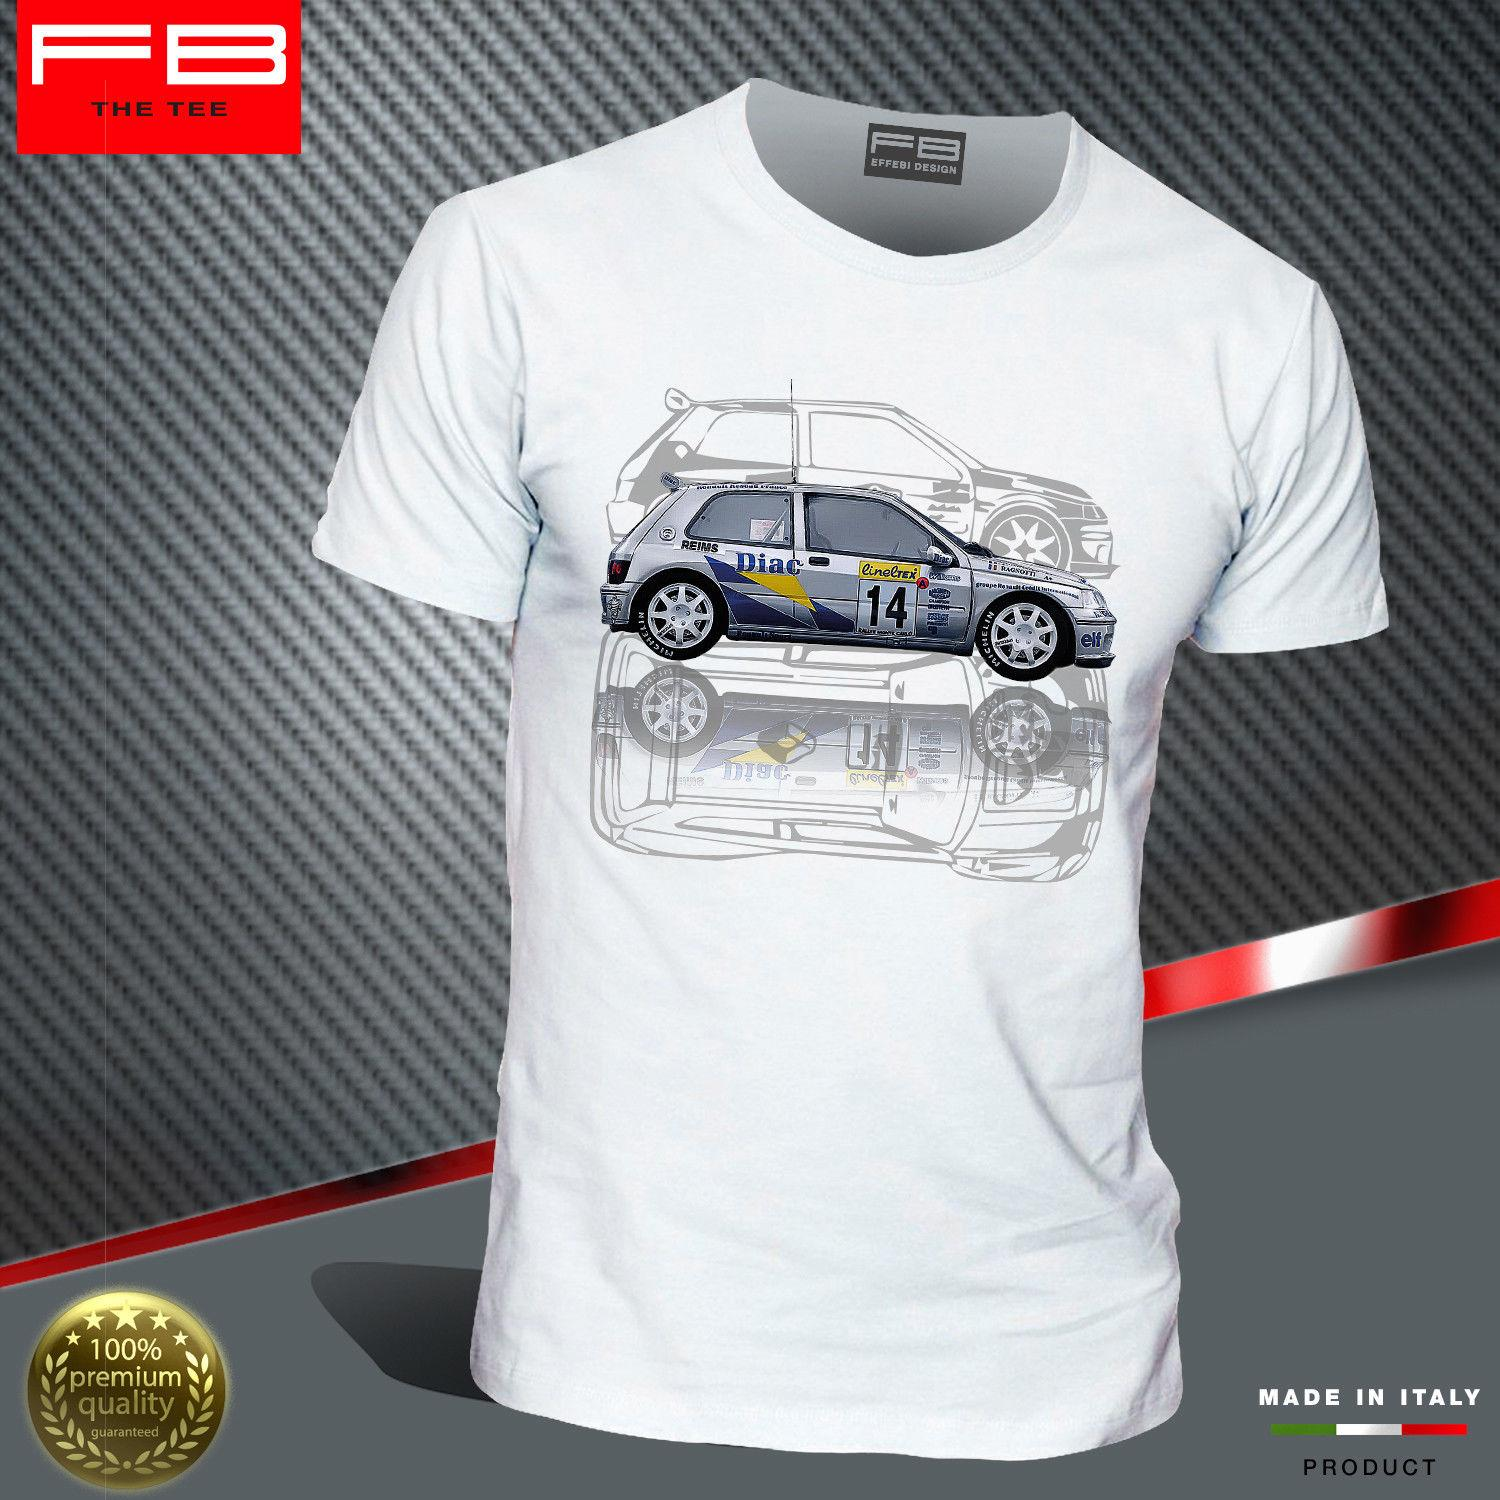 T Shirt Renault Clio Williams Maxi Kit Car Team Diac France A Ragnotti Wrc Fbteefunny Free Shipping Unisex Casual Top